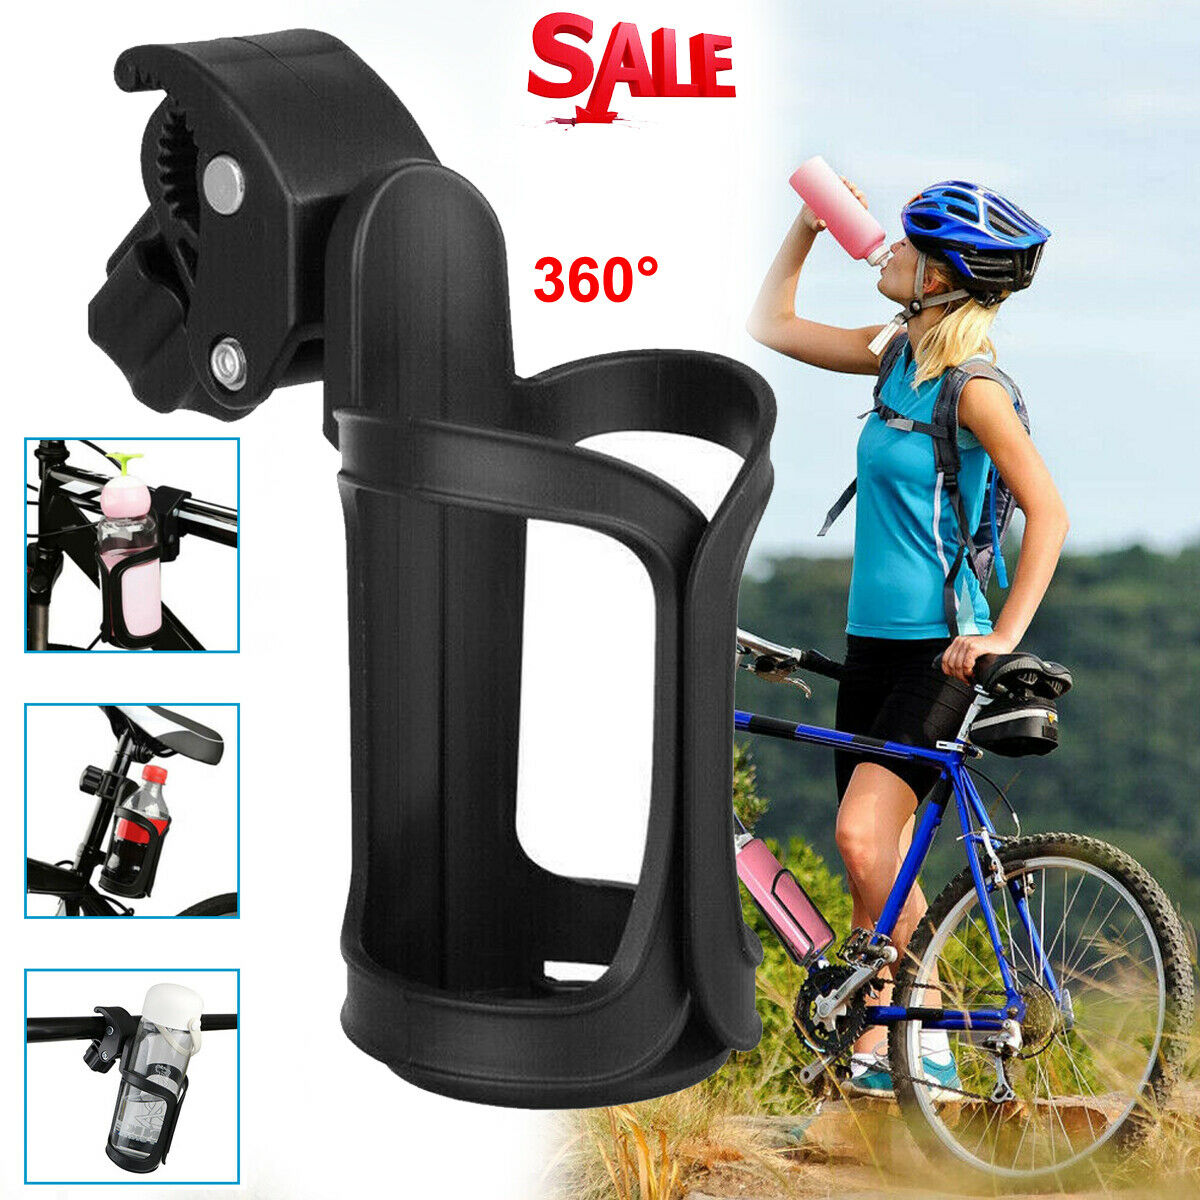 Black Handlebar Drink//Beverage Container for Walker//Cruiser//Exercise//Mountain Bike Vihir Bike Water Bottle Holder Bag for Adult Bicycle Coffee Cup Holders with Phone Storage